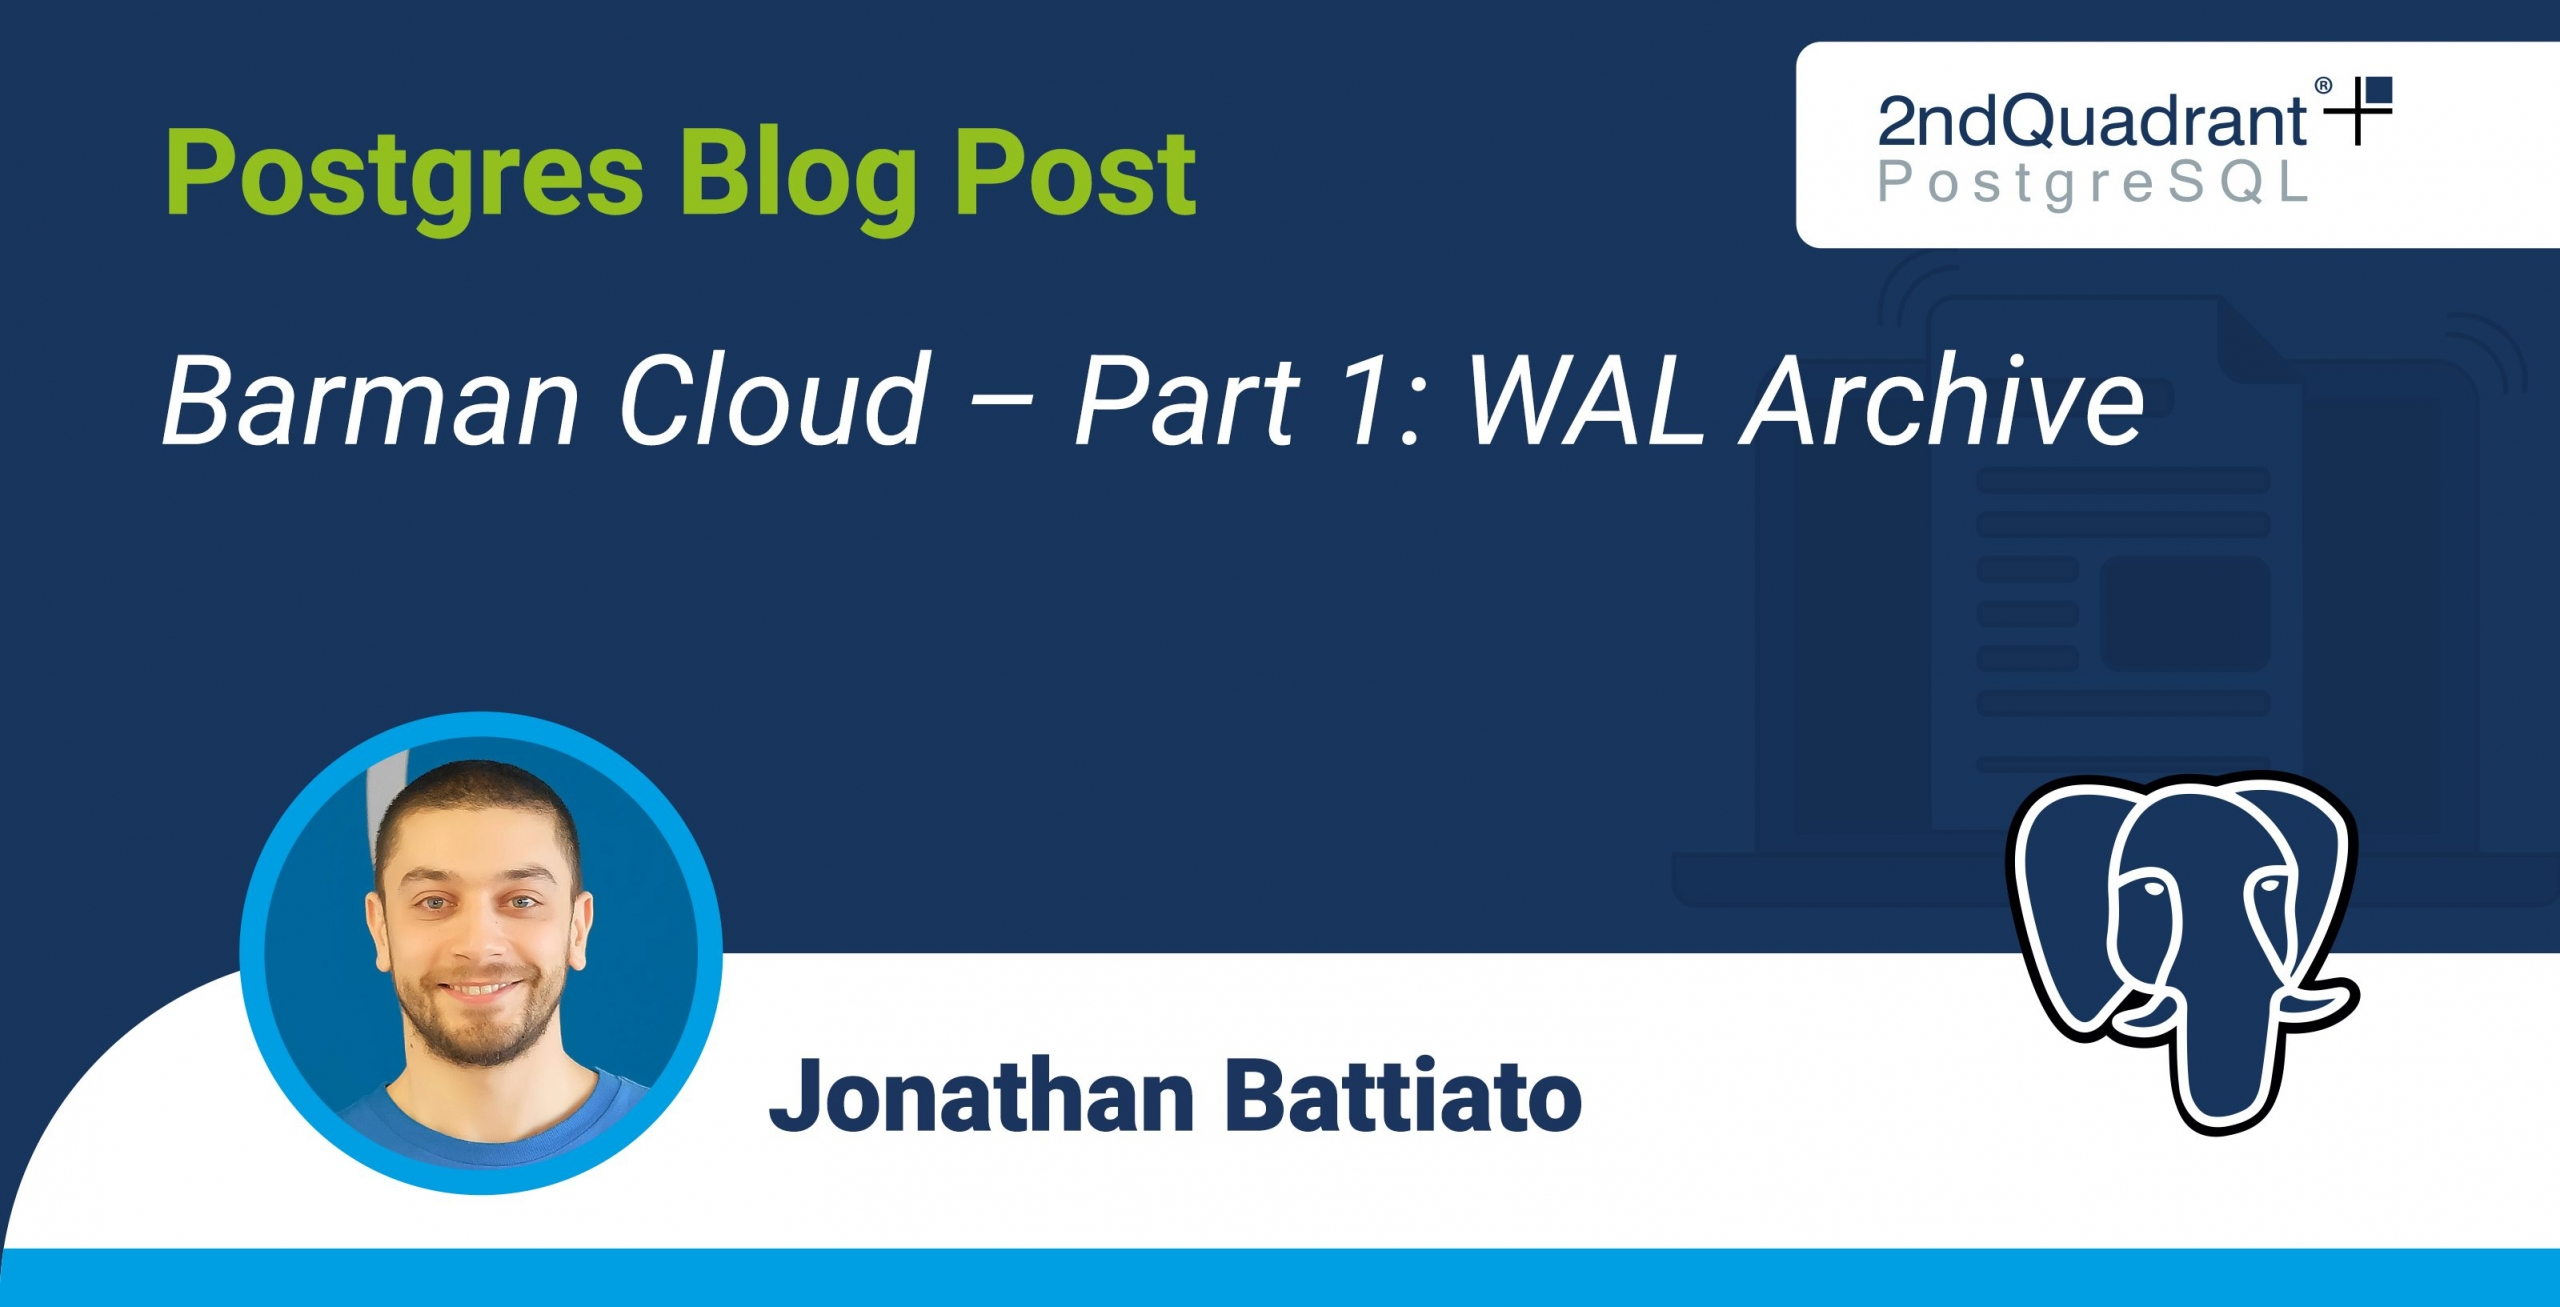 Barman Cloud – Part 1 - WAL Archive